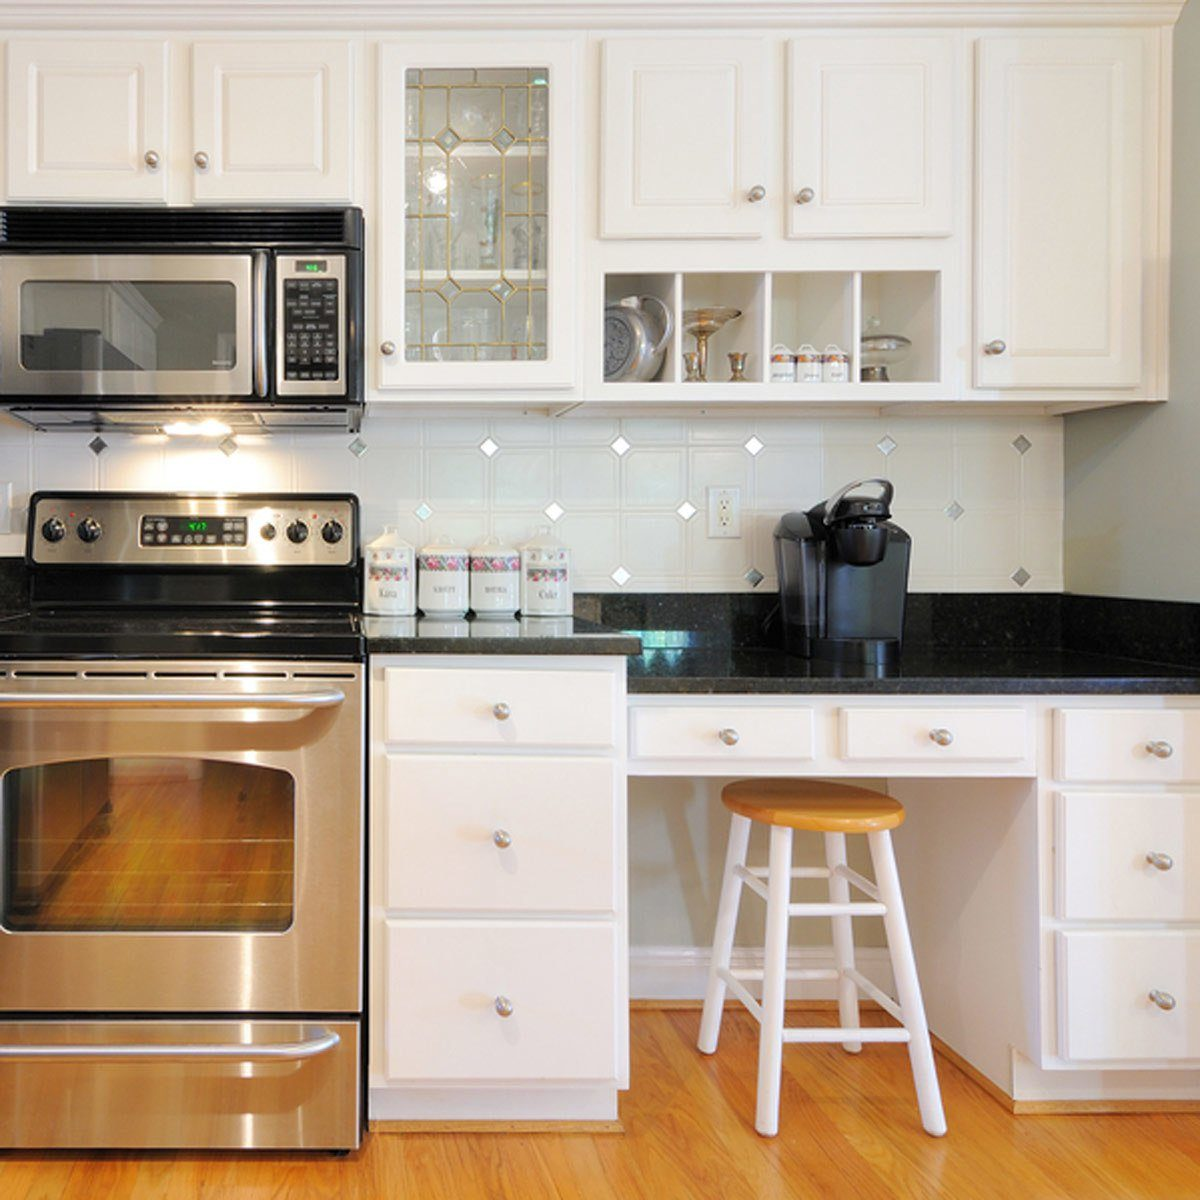 outdated home trends to avoid at all